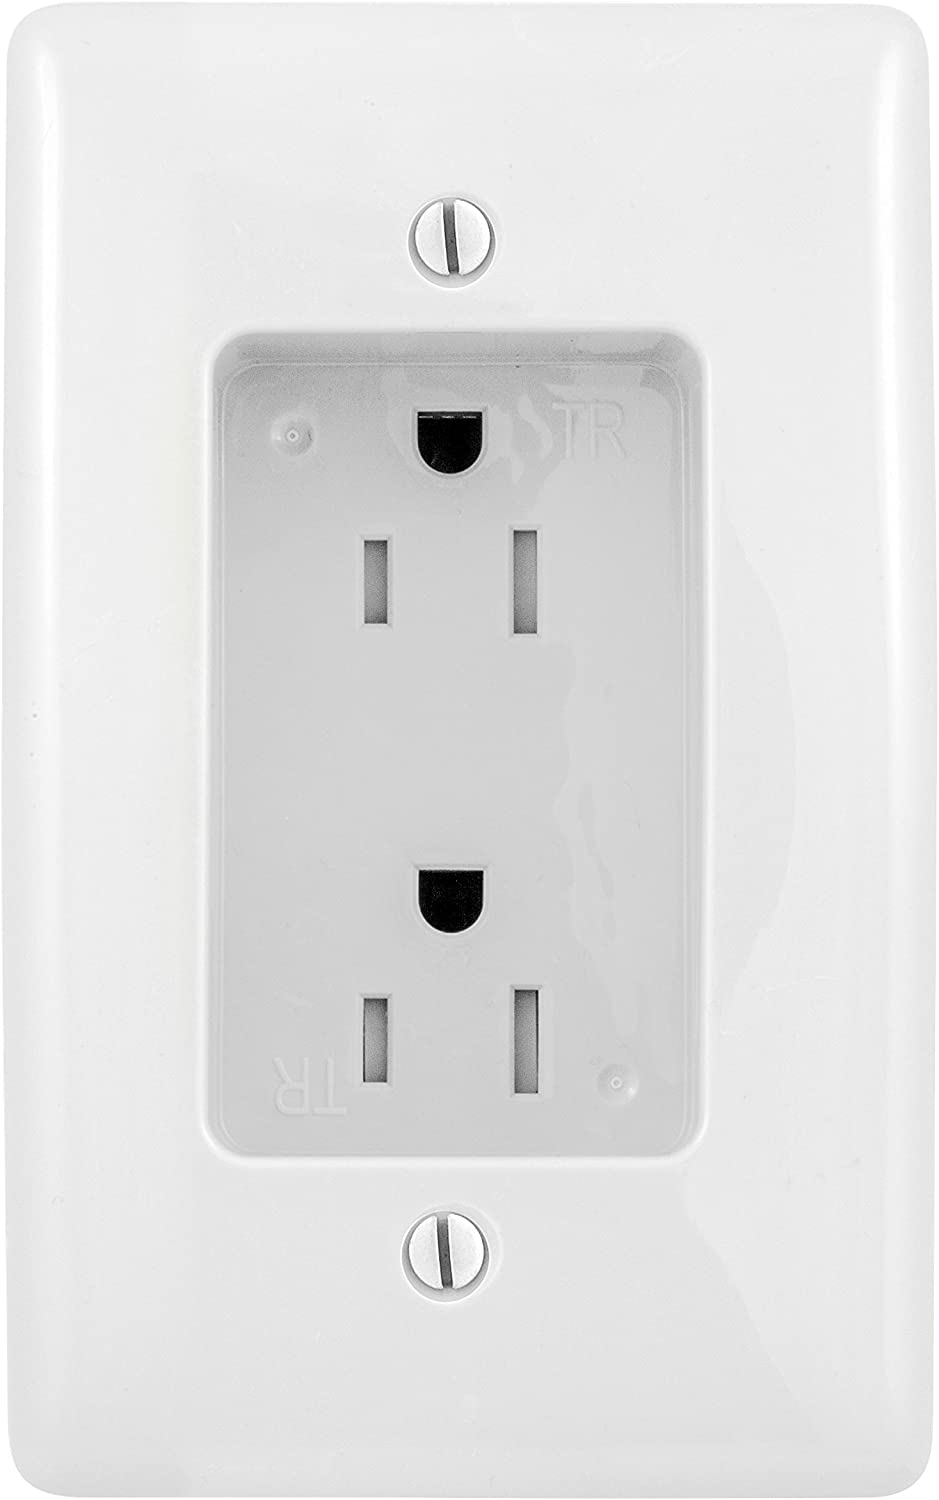 Bryant Electric Rr1512W 2-Gang Recessed Tv Connection Outlet Plate With 15 Amp 1